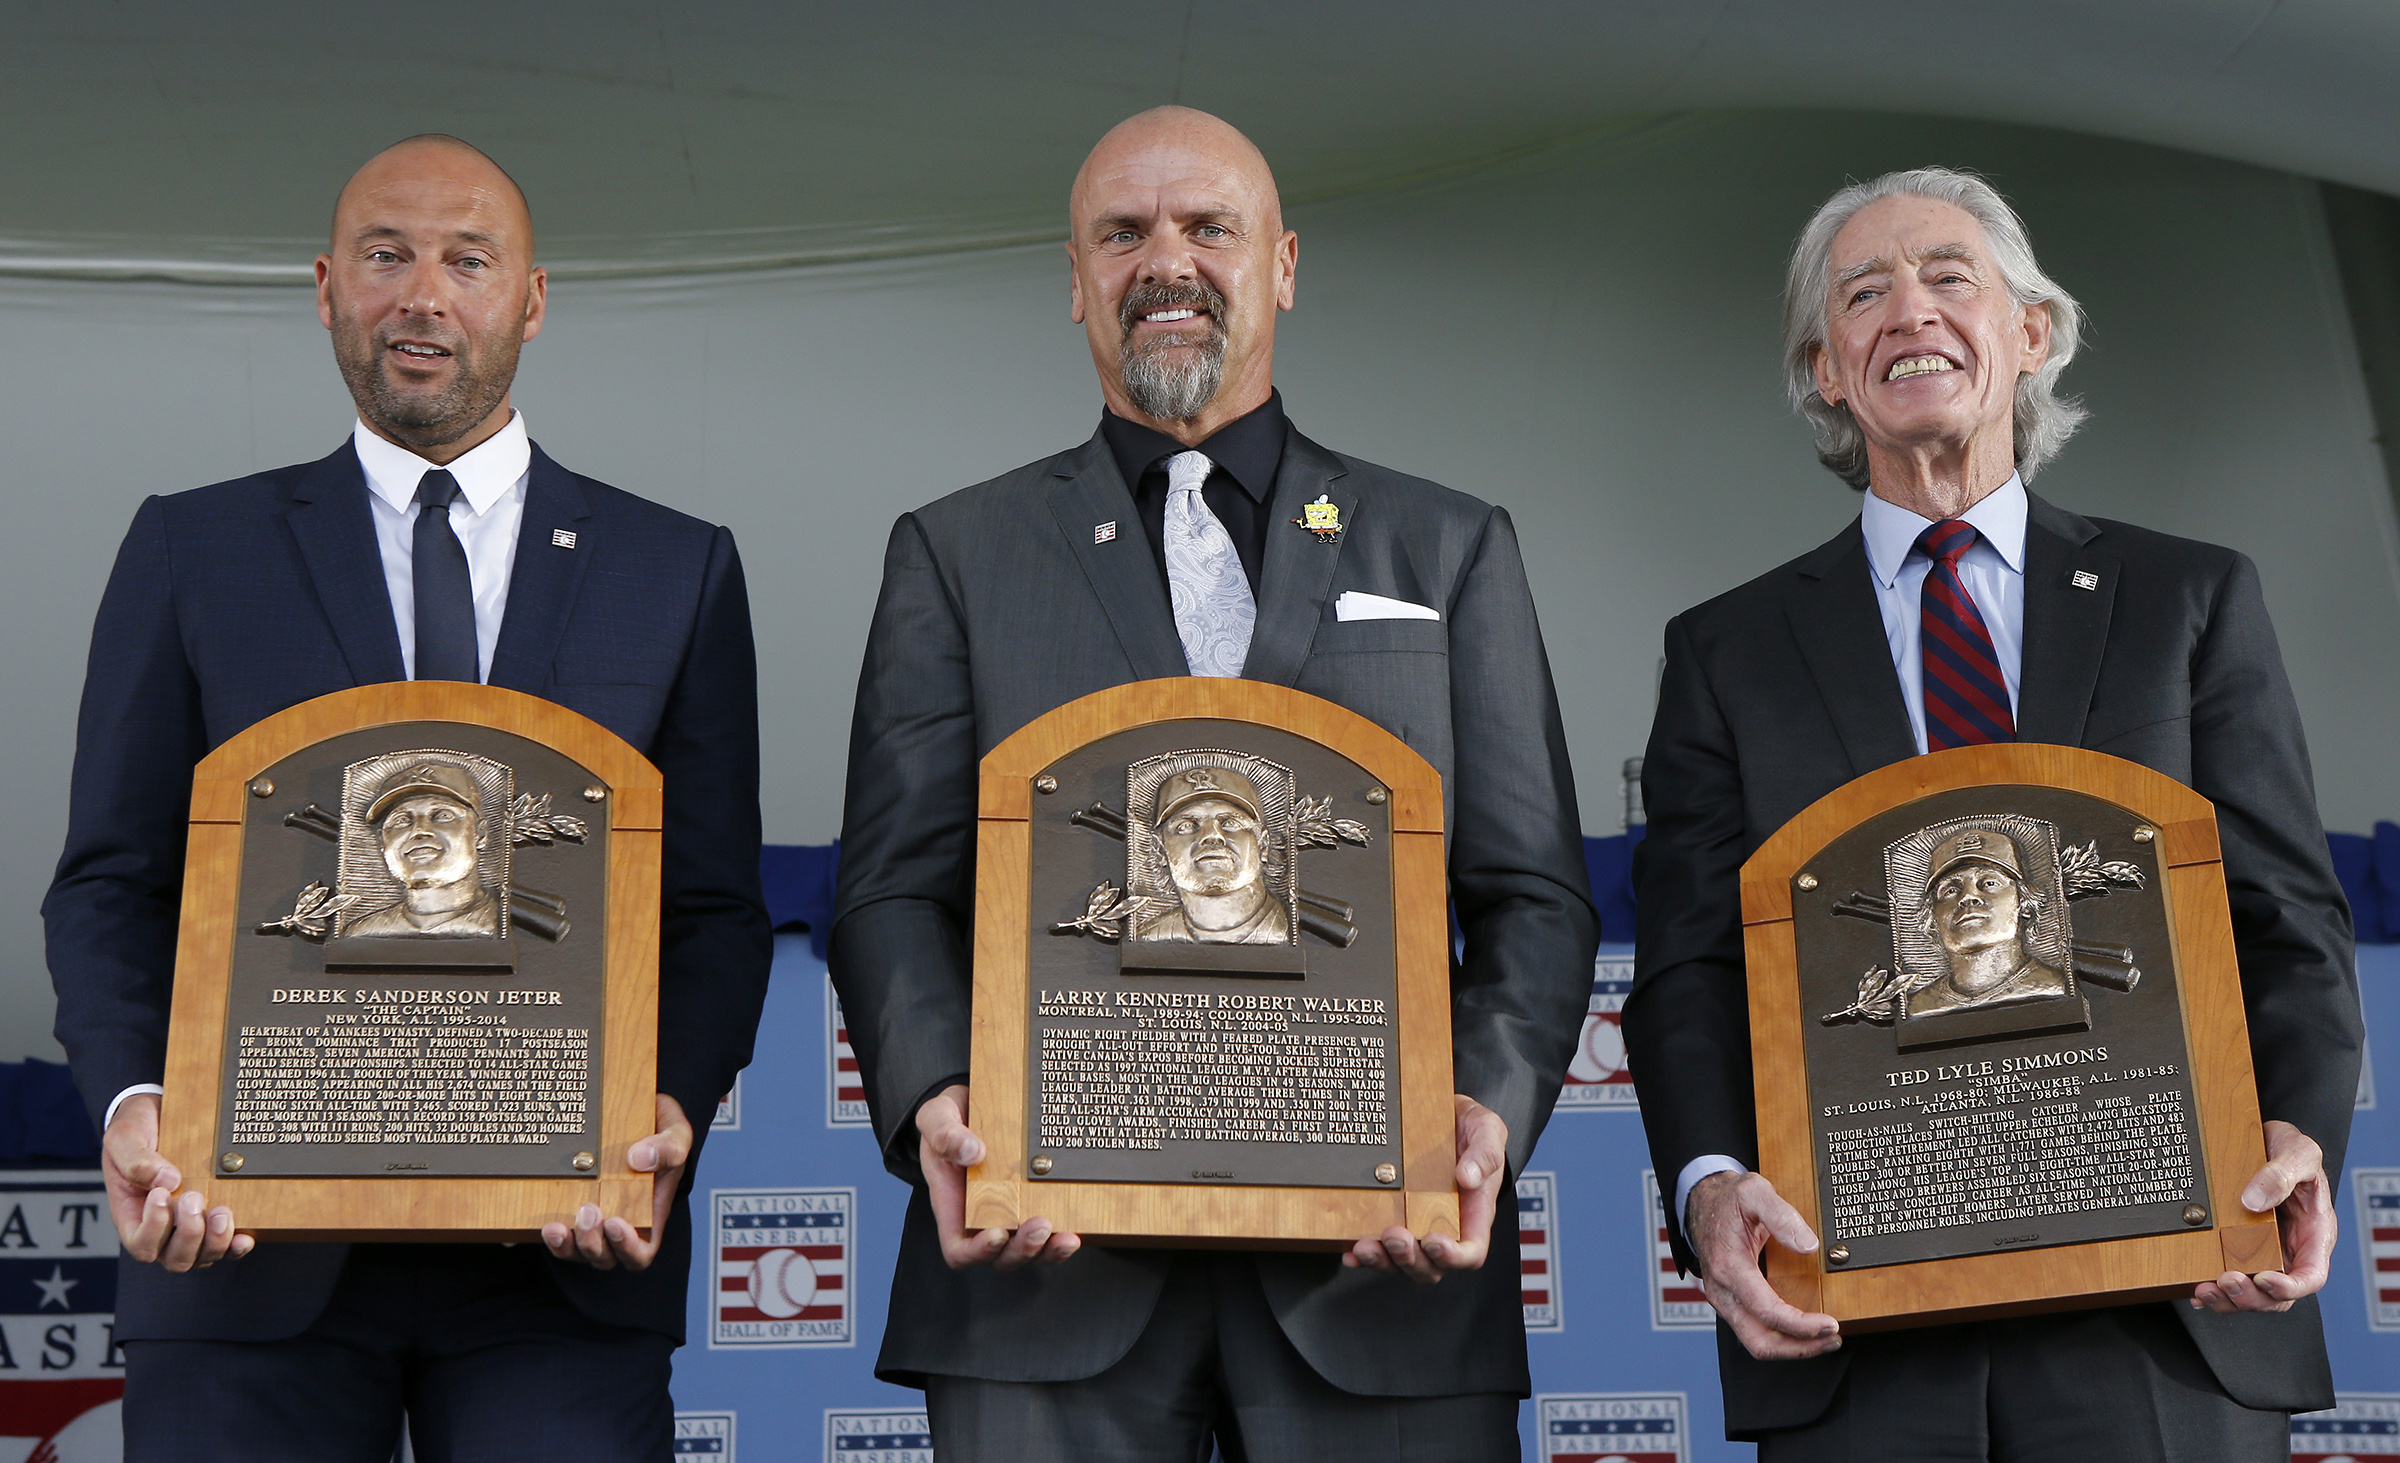 Derek Jeter, Larry Walker and Ted Simmons pose for a photograph with their plaques during the Baseball Hall of Fame induction ceremony at Clark Sports Center on September 08, 2021 in Cooperstown, New York